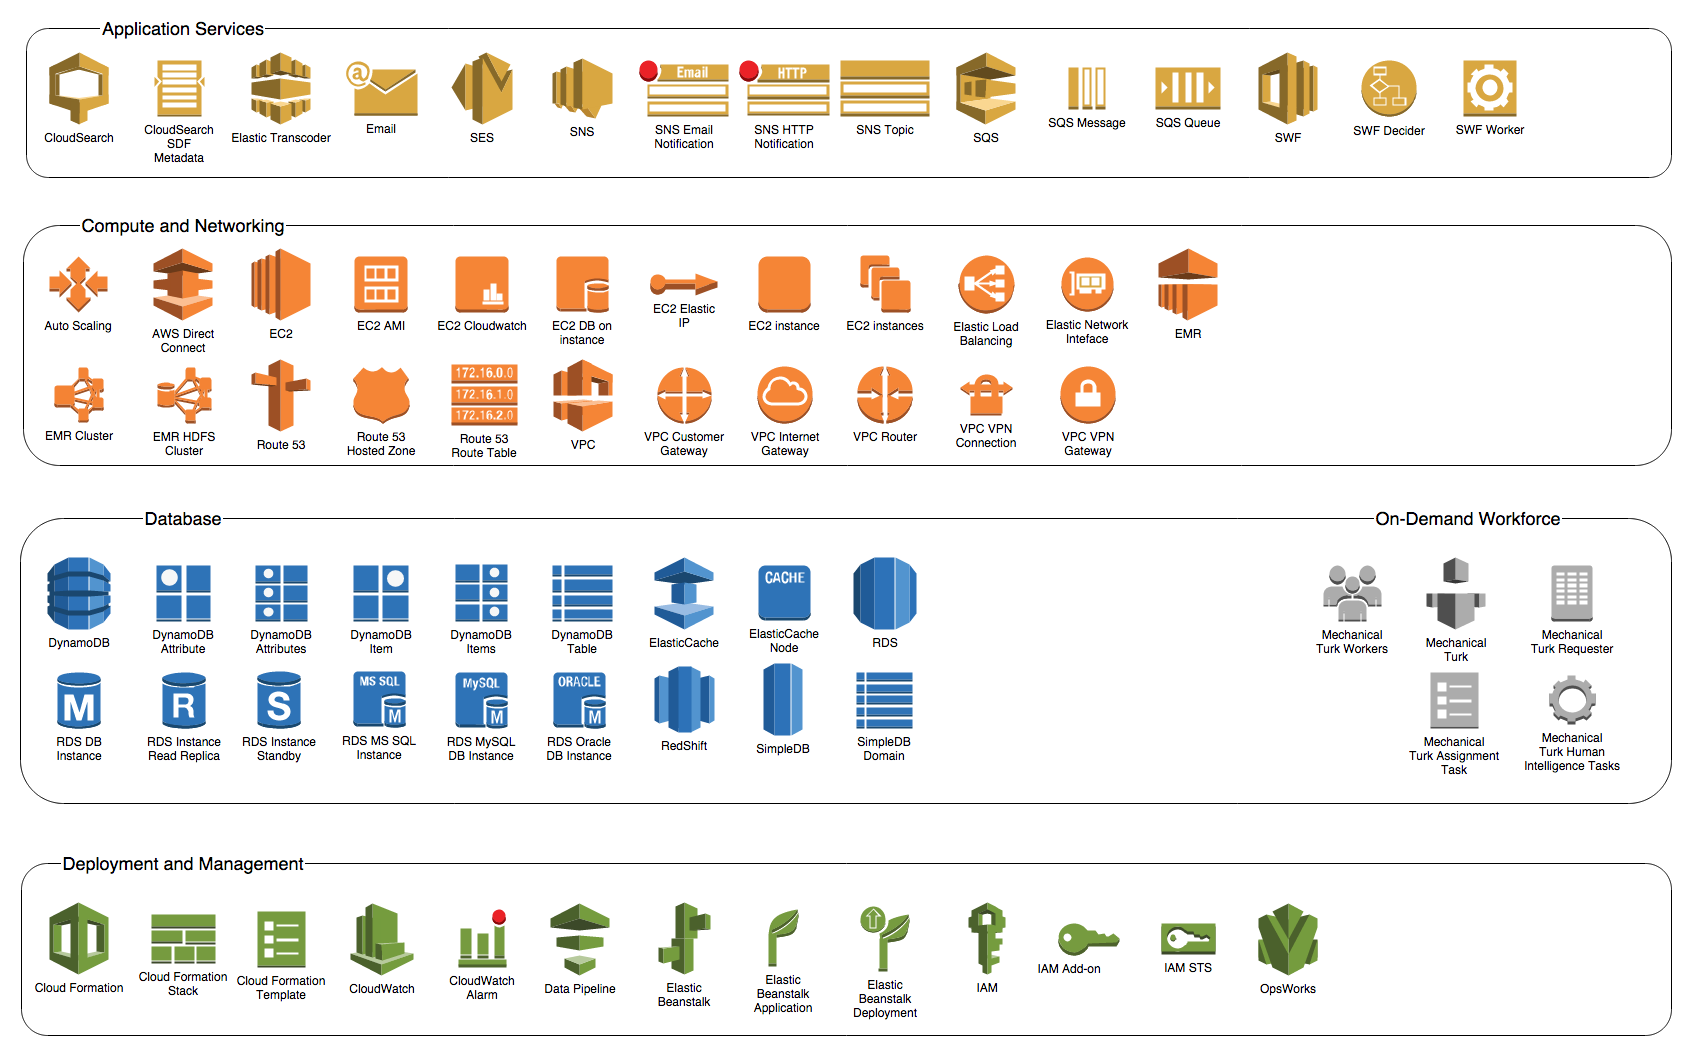 aws diagram and icon explained